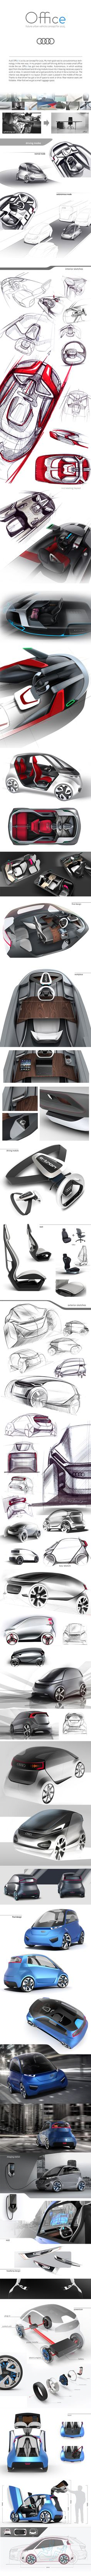 Audi Office concept on Behance